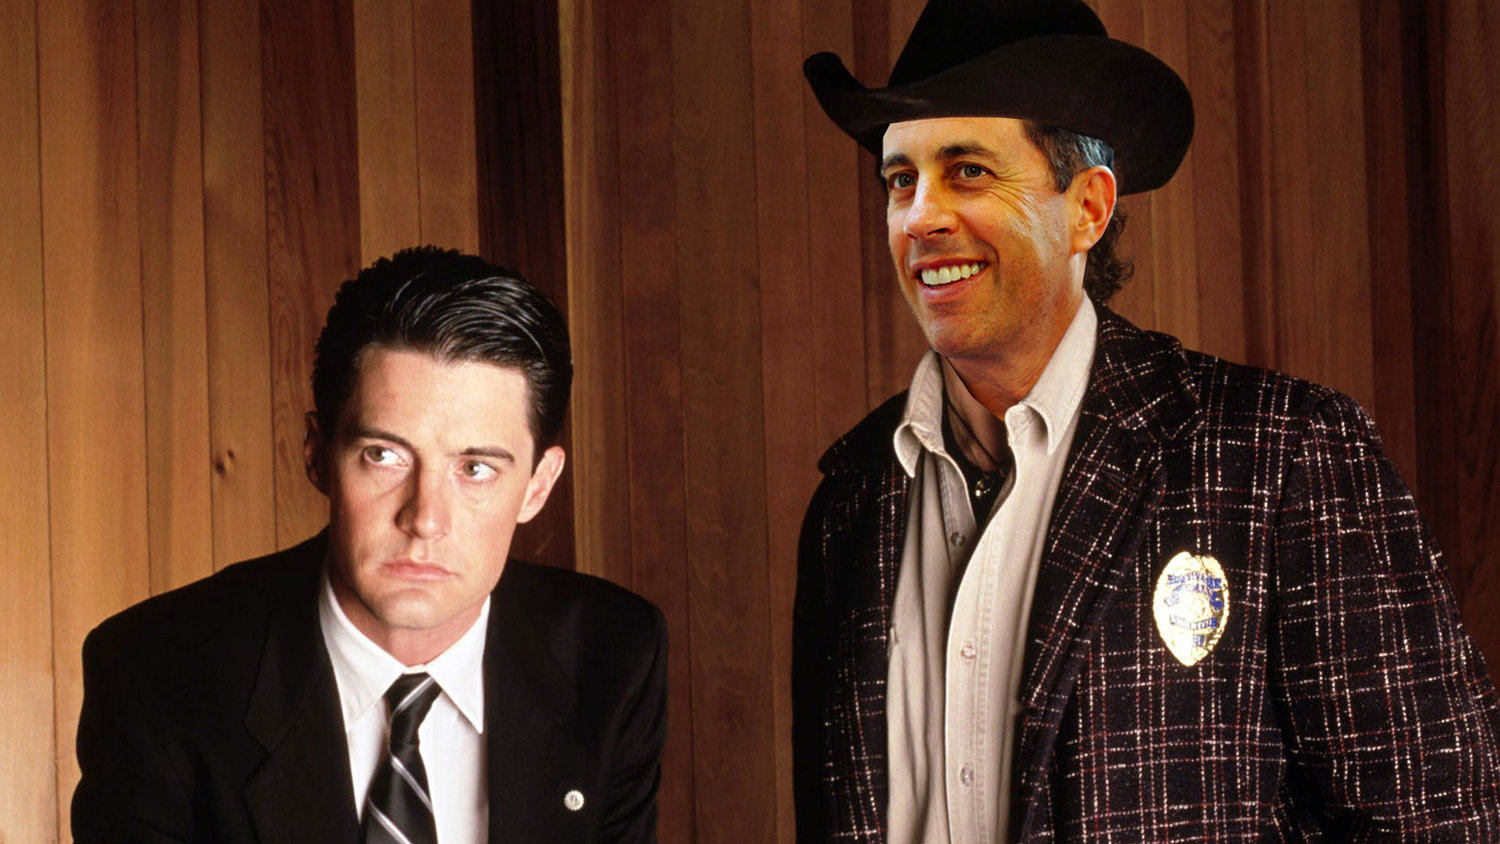 This TWIN PEAKS/SEINFELD Theme Mash Up Works Surprisingly Well